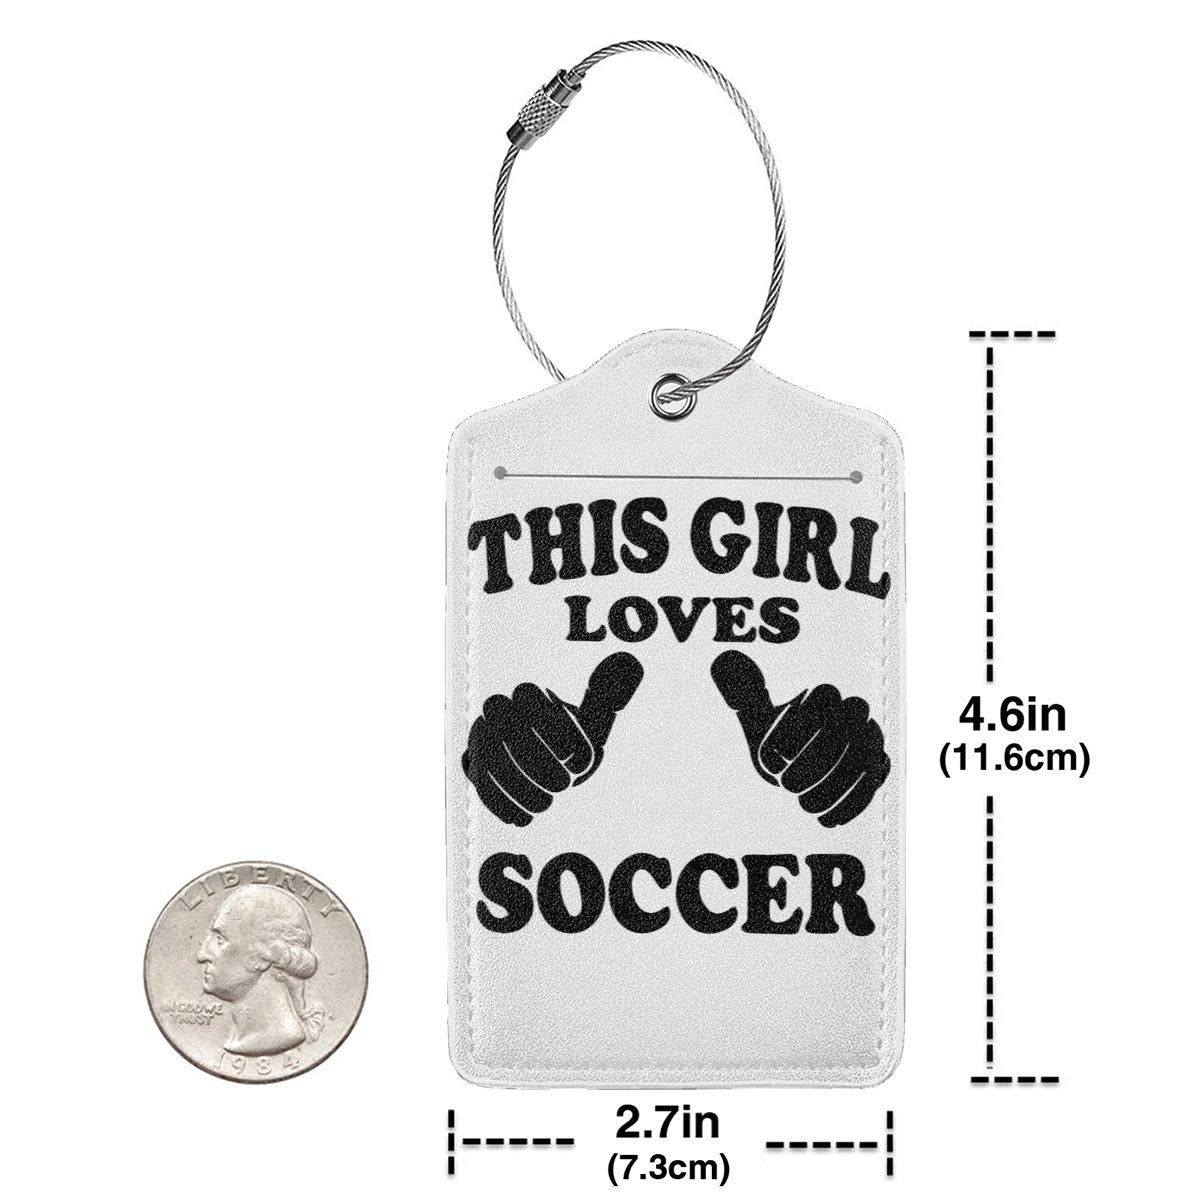 This Girl Loves Soccer Travel Luggage Tags With Full Privacy Cover Leather Case And Stainless Steel Loop